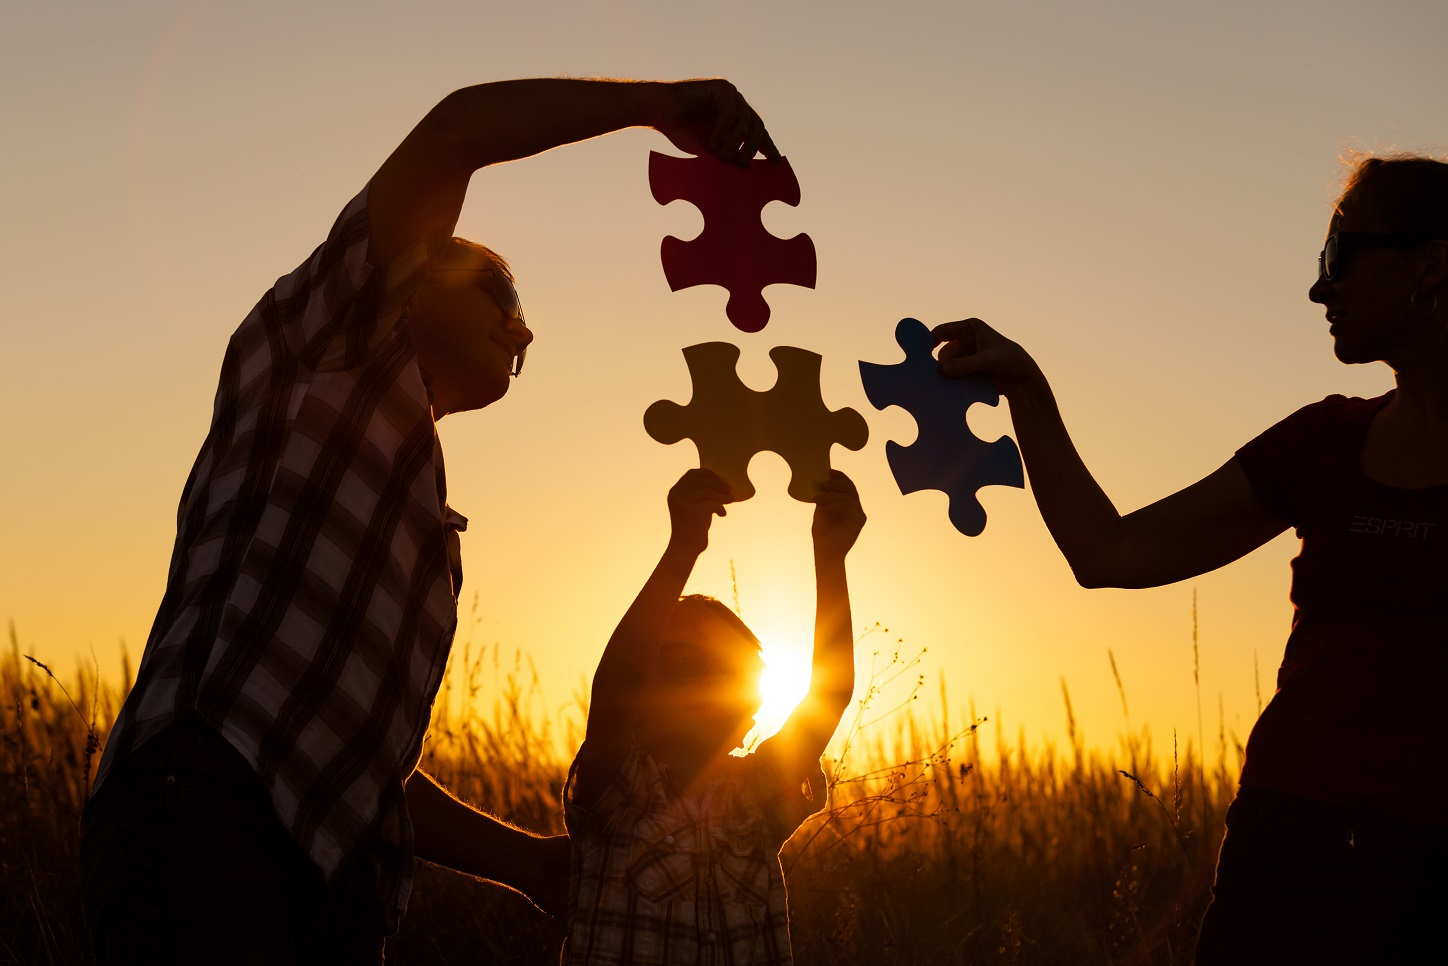 The silhouettes of 2 parents and a child each holding a giant puzzle piece against the backdrop of a sunset.